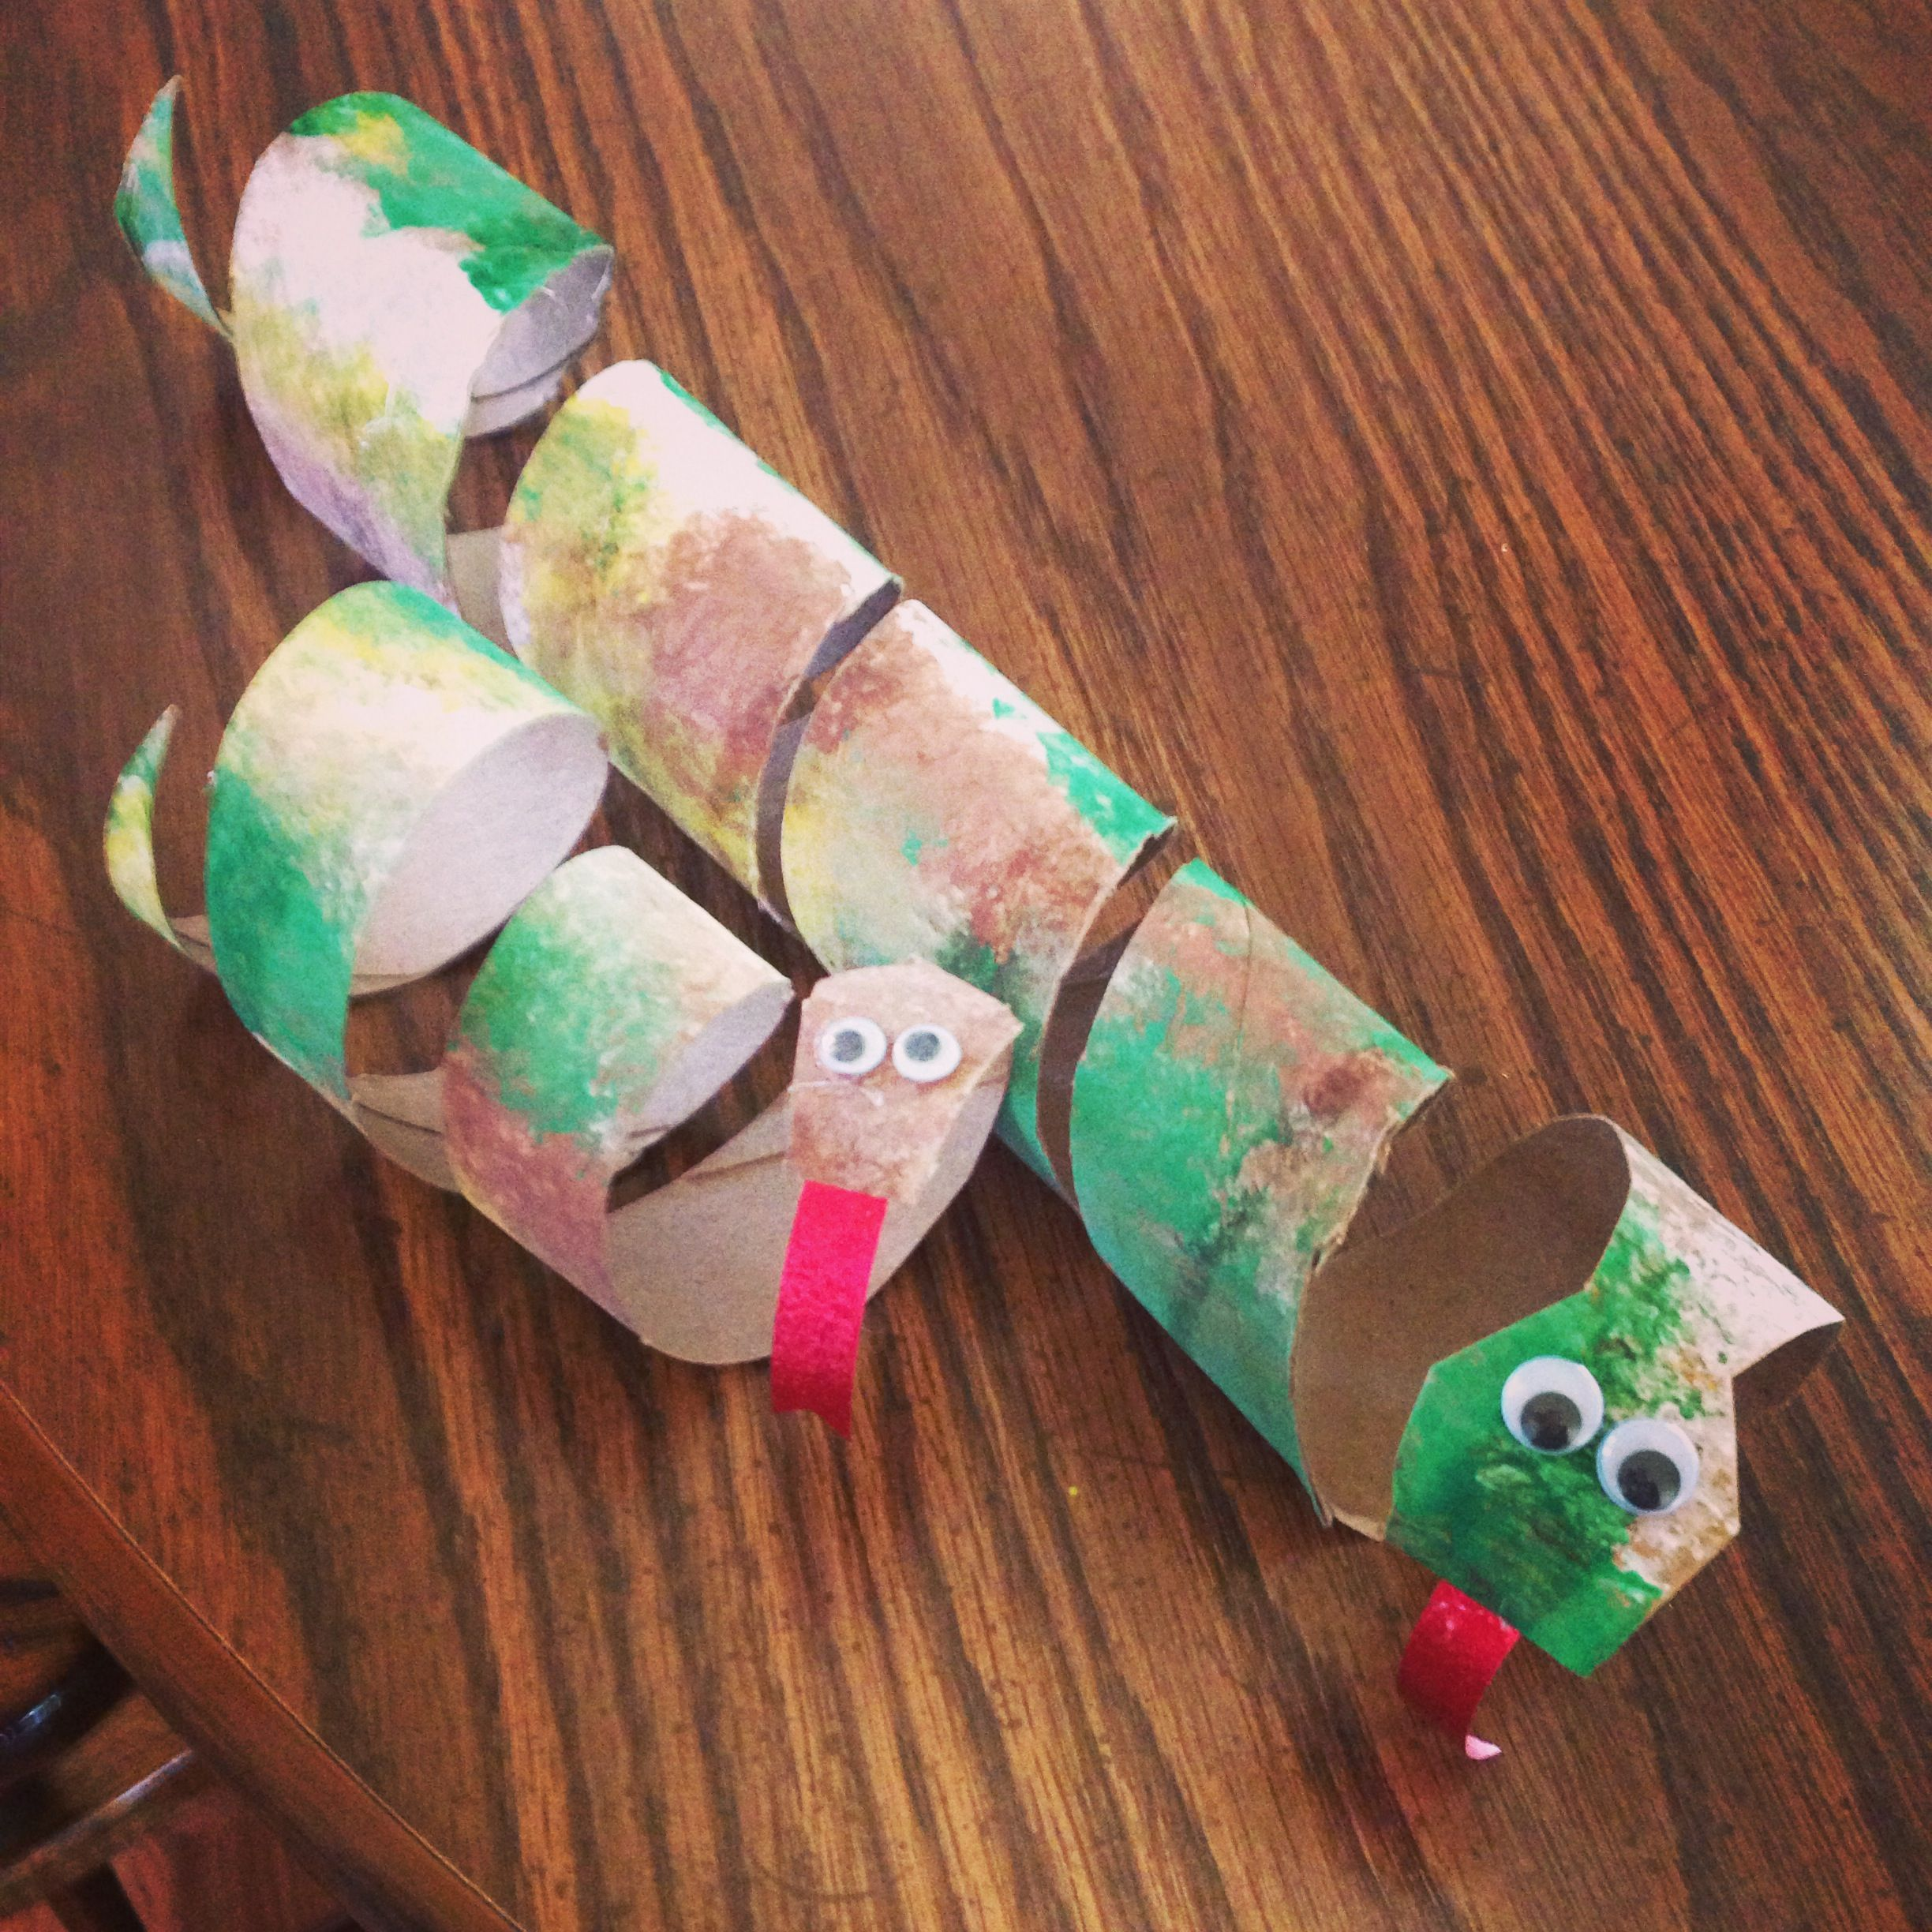 Paper towel roll for the mommy snake and toilet paper roll for the baby. We used sponges and fingerpaints, then cut, then hot glue a red ribbon tongue and beady eyes. Fun!